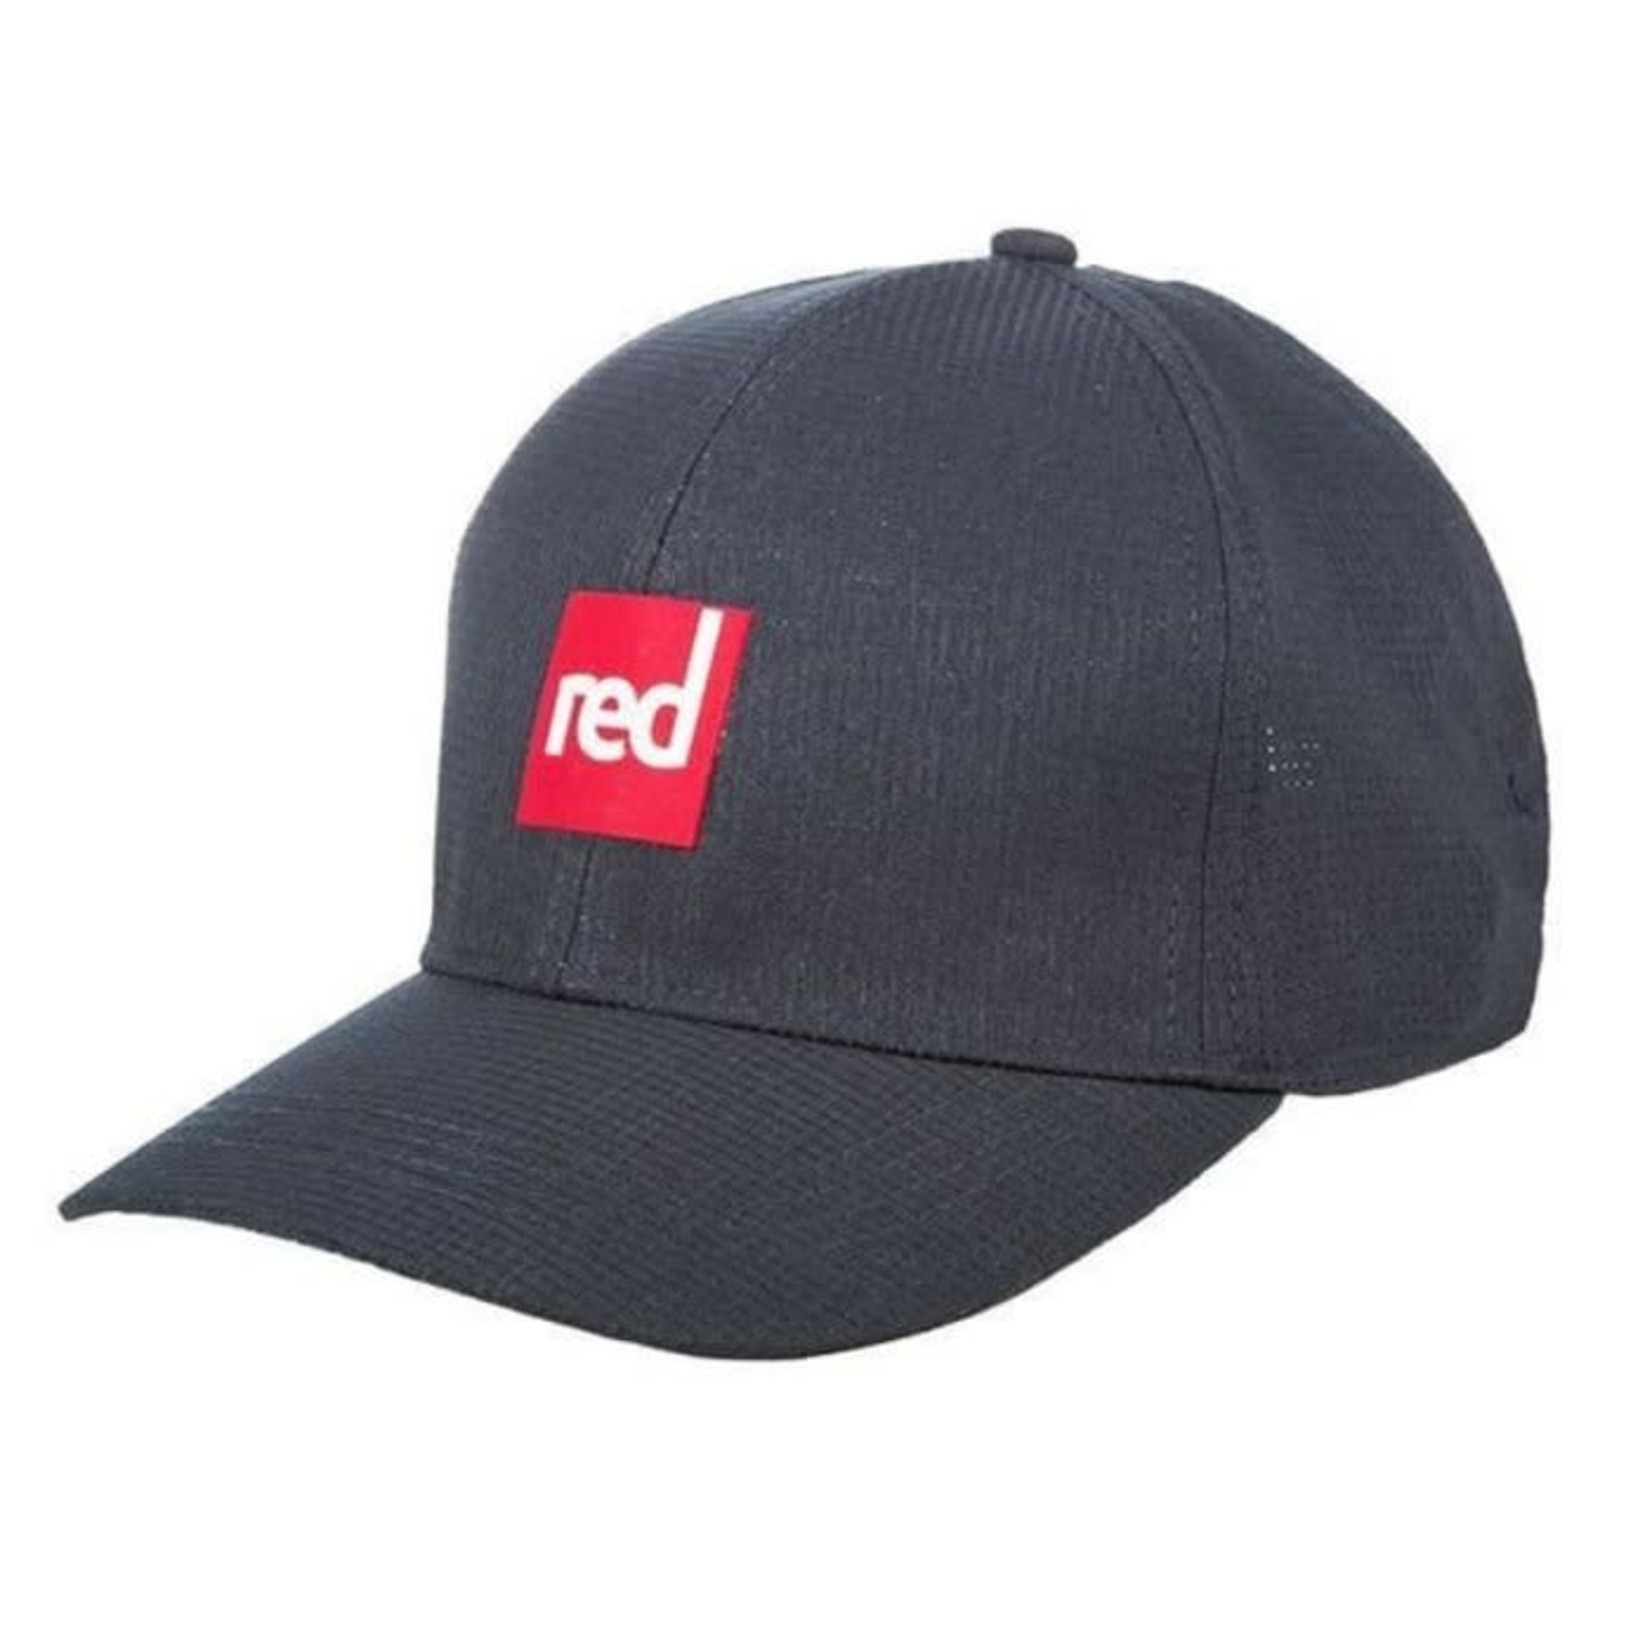 Red Paddle Co. RED Paddle Co. Paddle hat-Navy